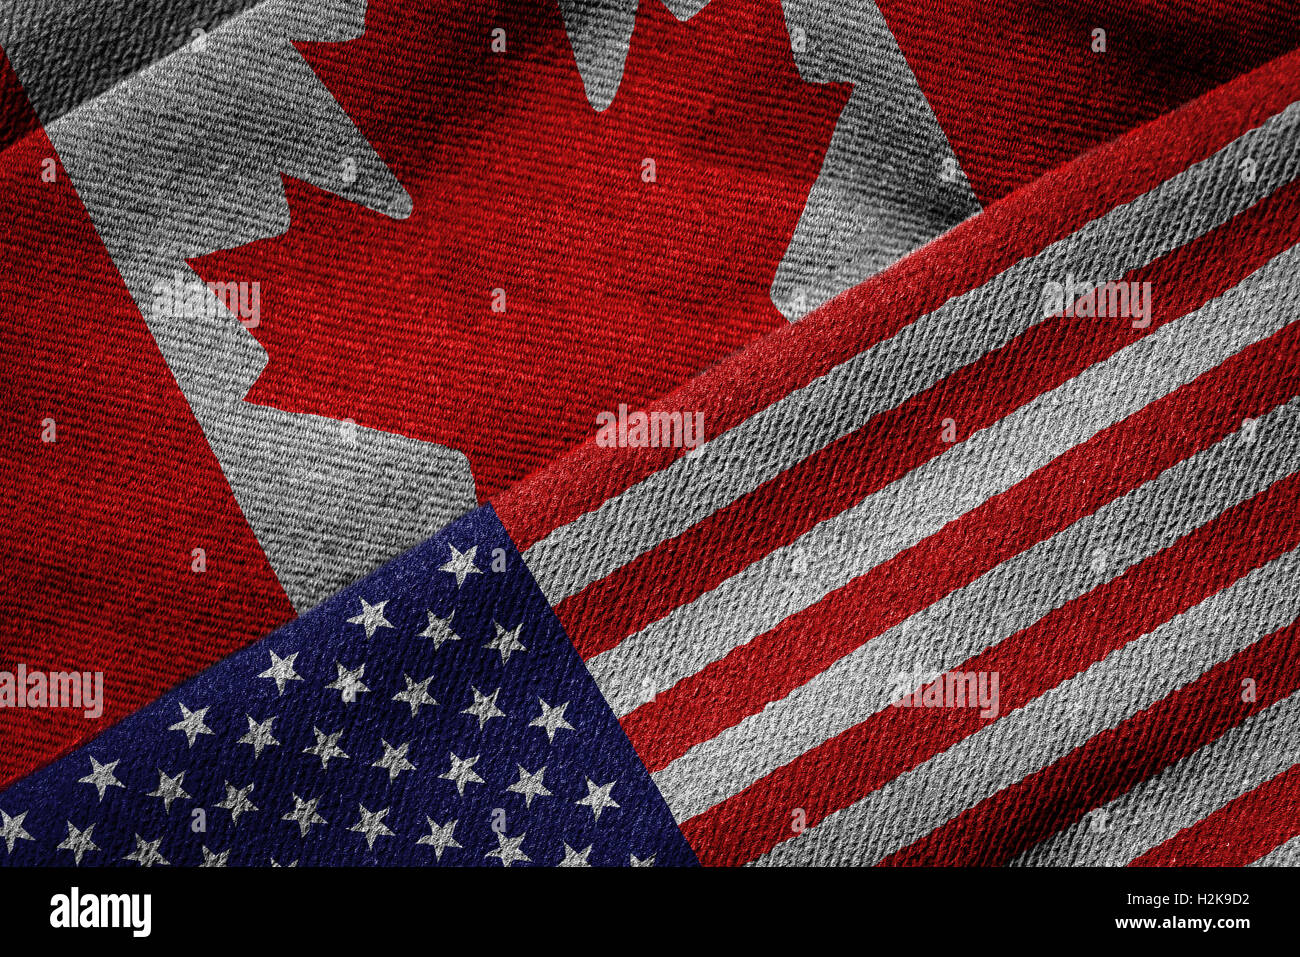 3D rendering of the flags of USA and Canada on woven fabric texture. Detailed textile pattern and grunge theme. Stock Photo